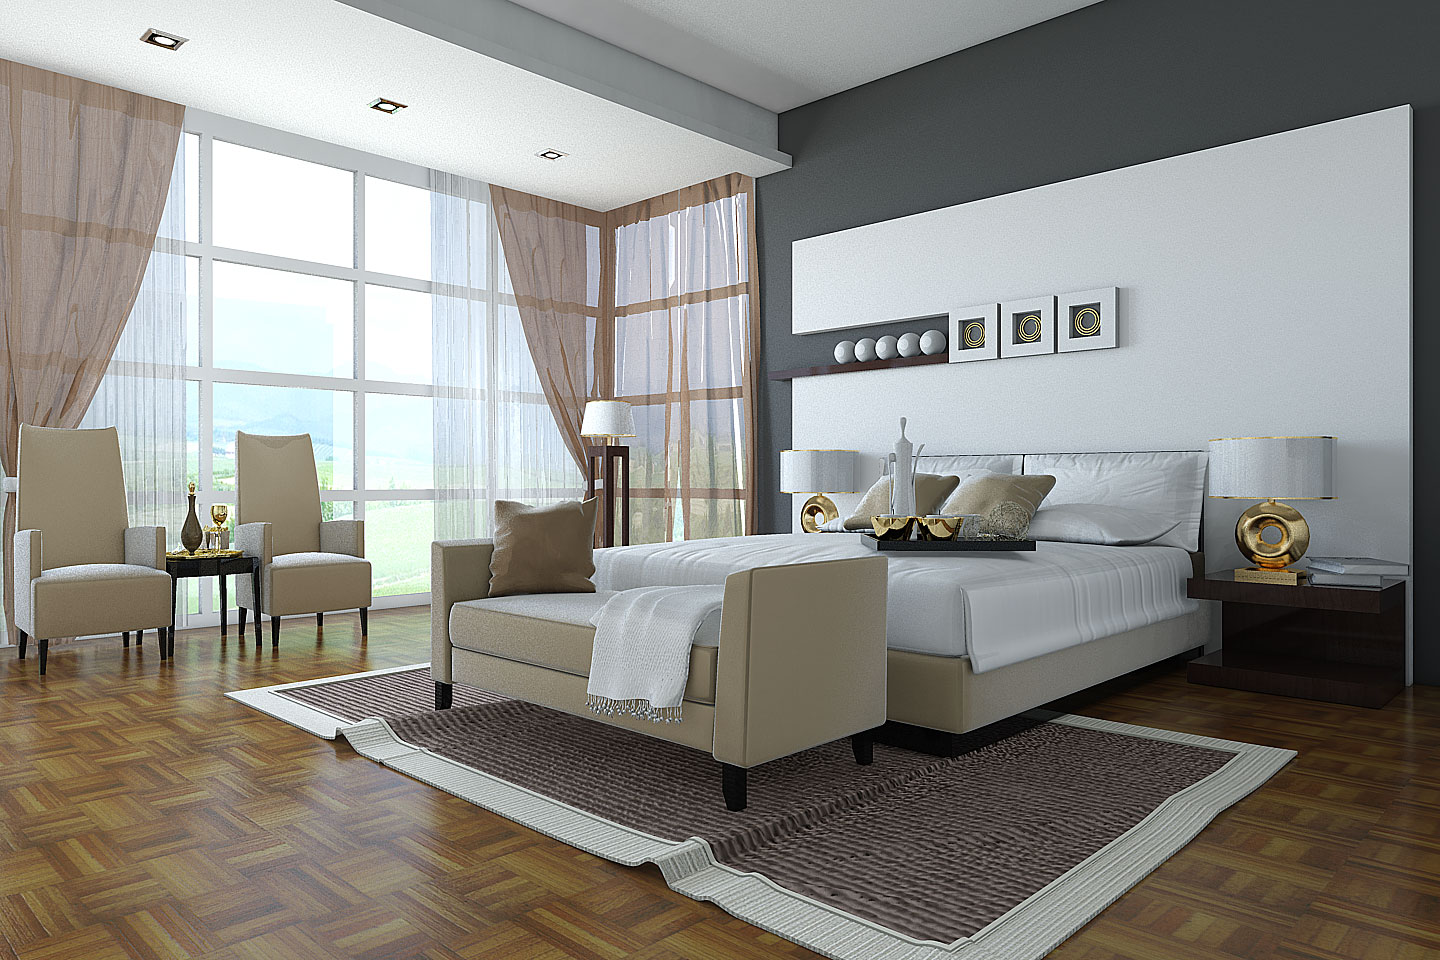 Beautiful bedroom interiors - Classic Bedroom Design